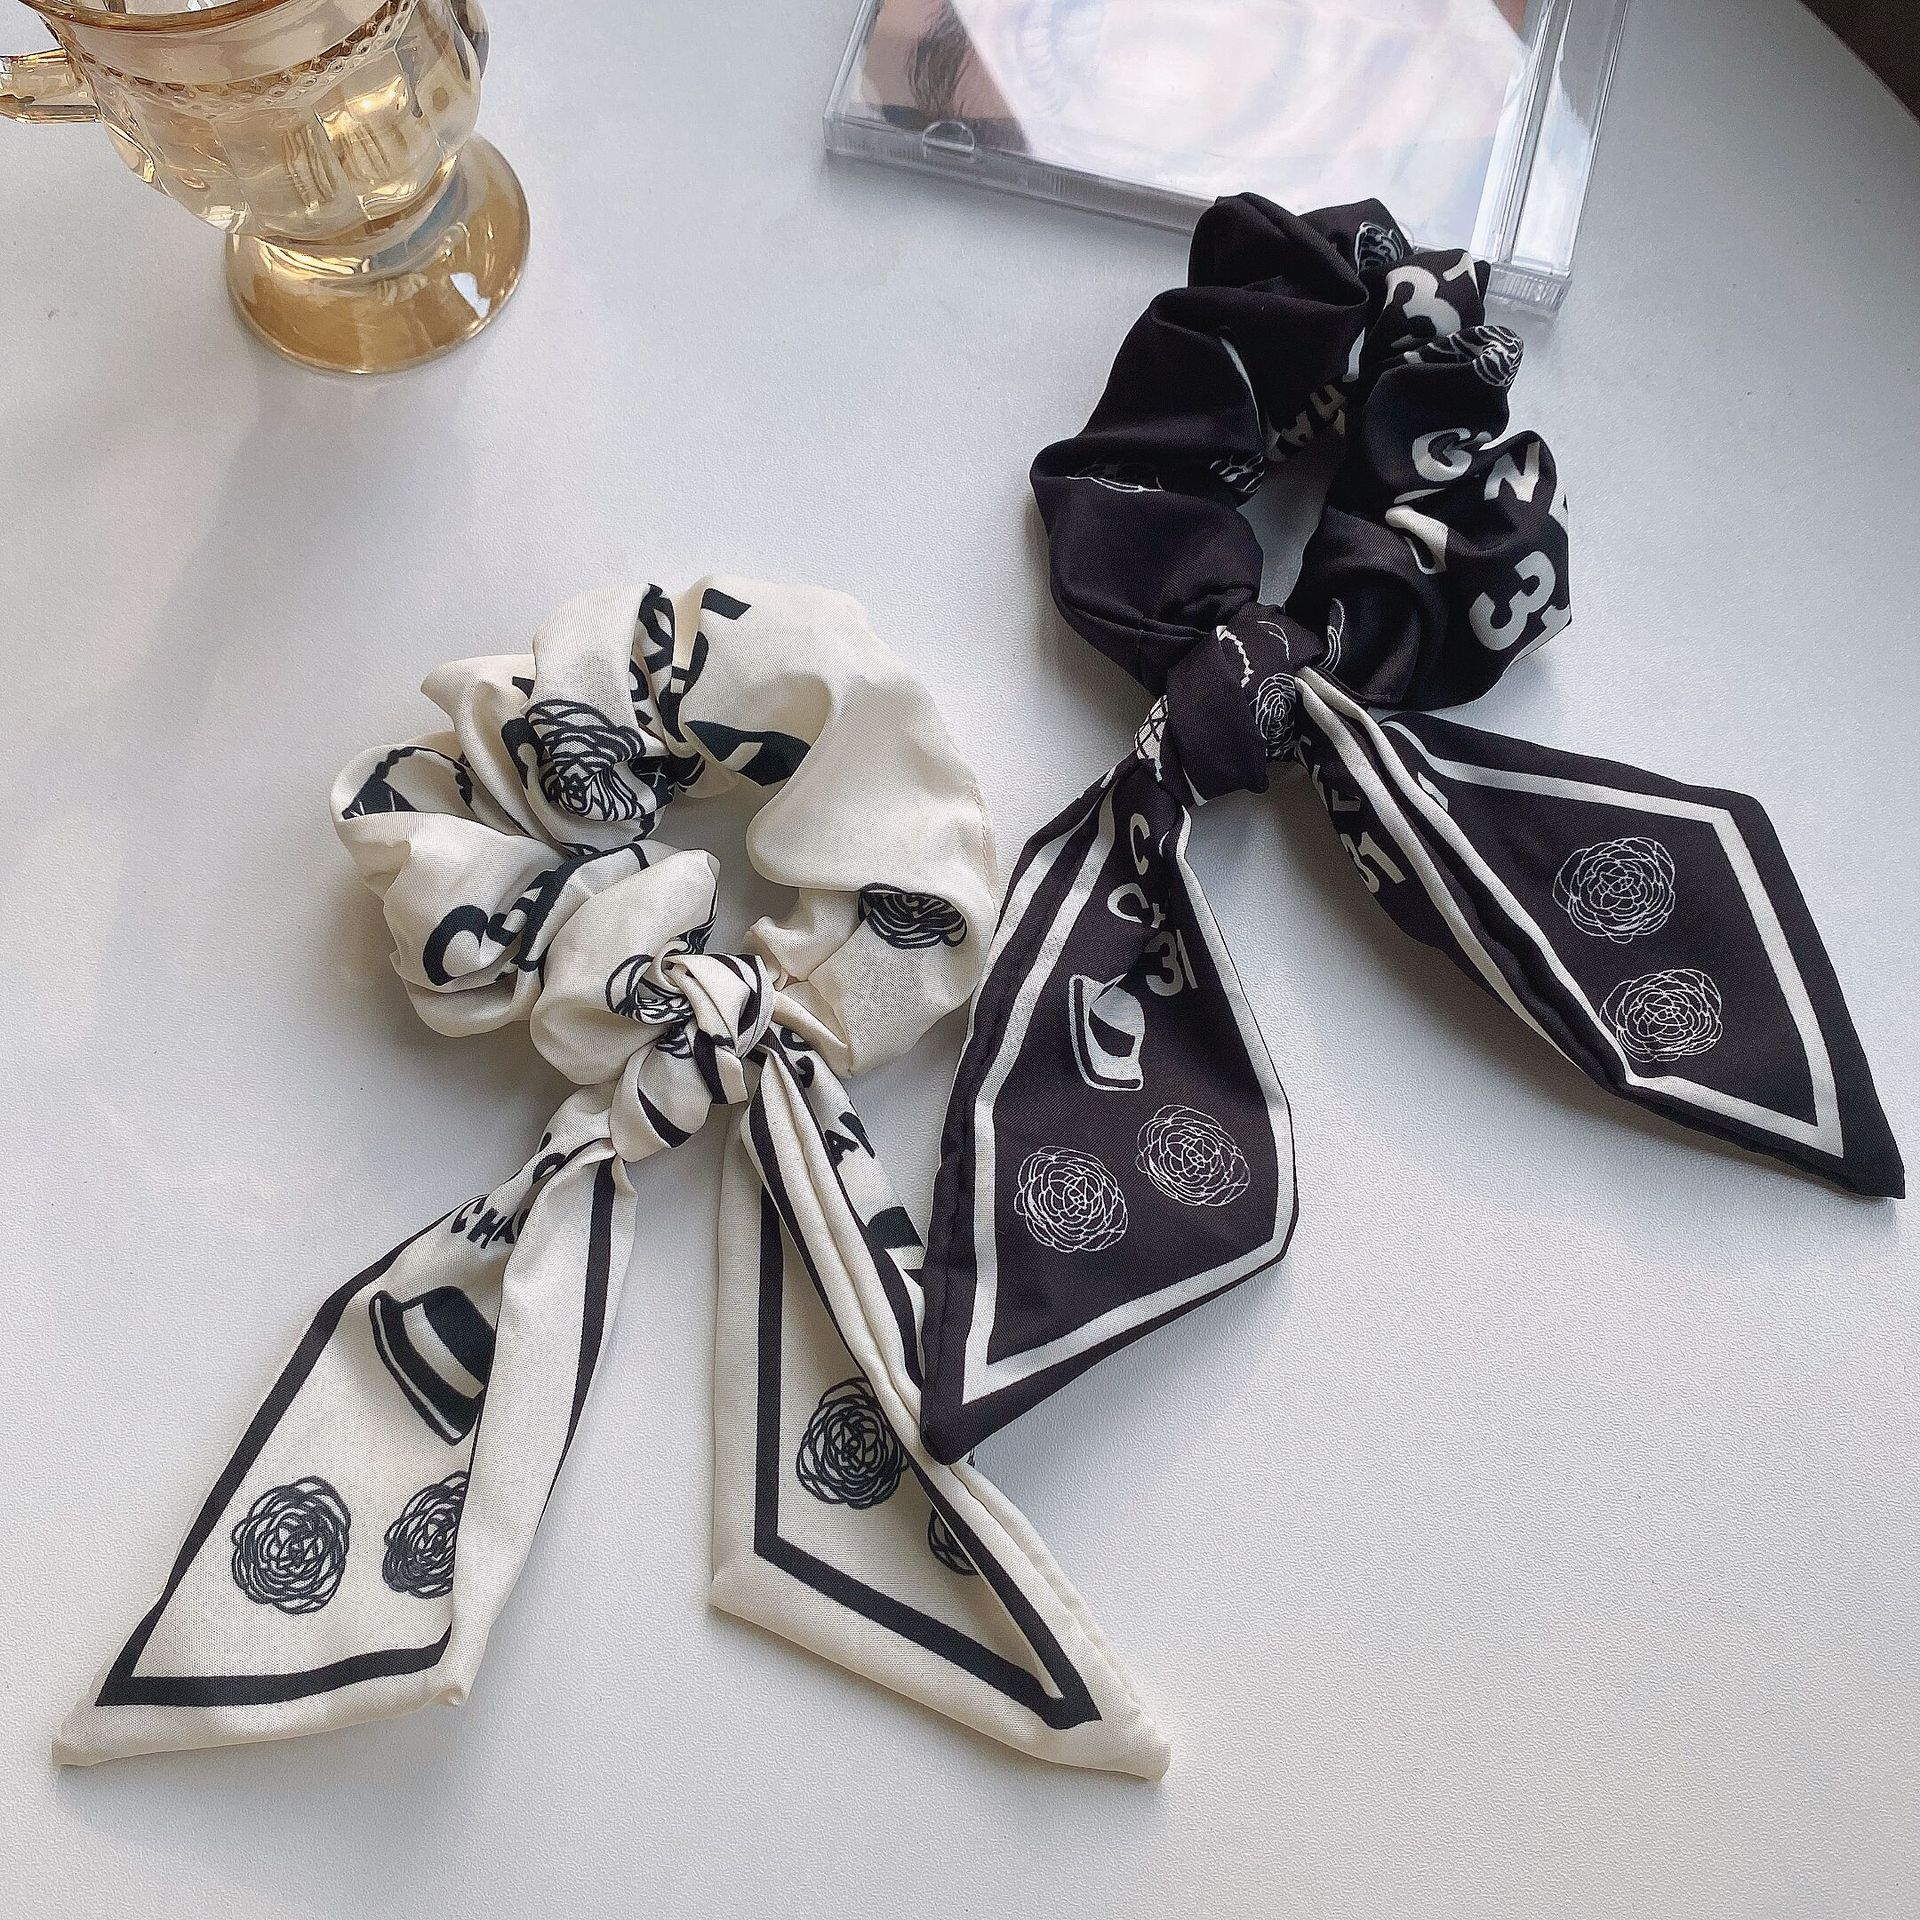 Monochrome Printed Cloth Scrunchies for Classy Looks